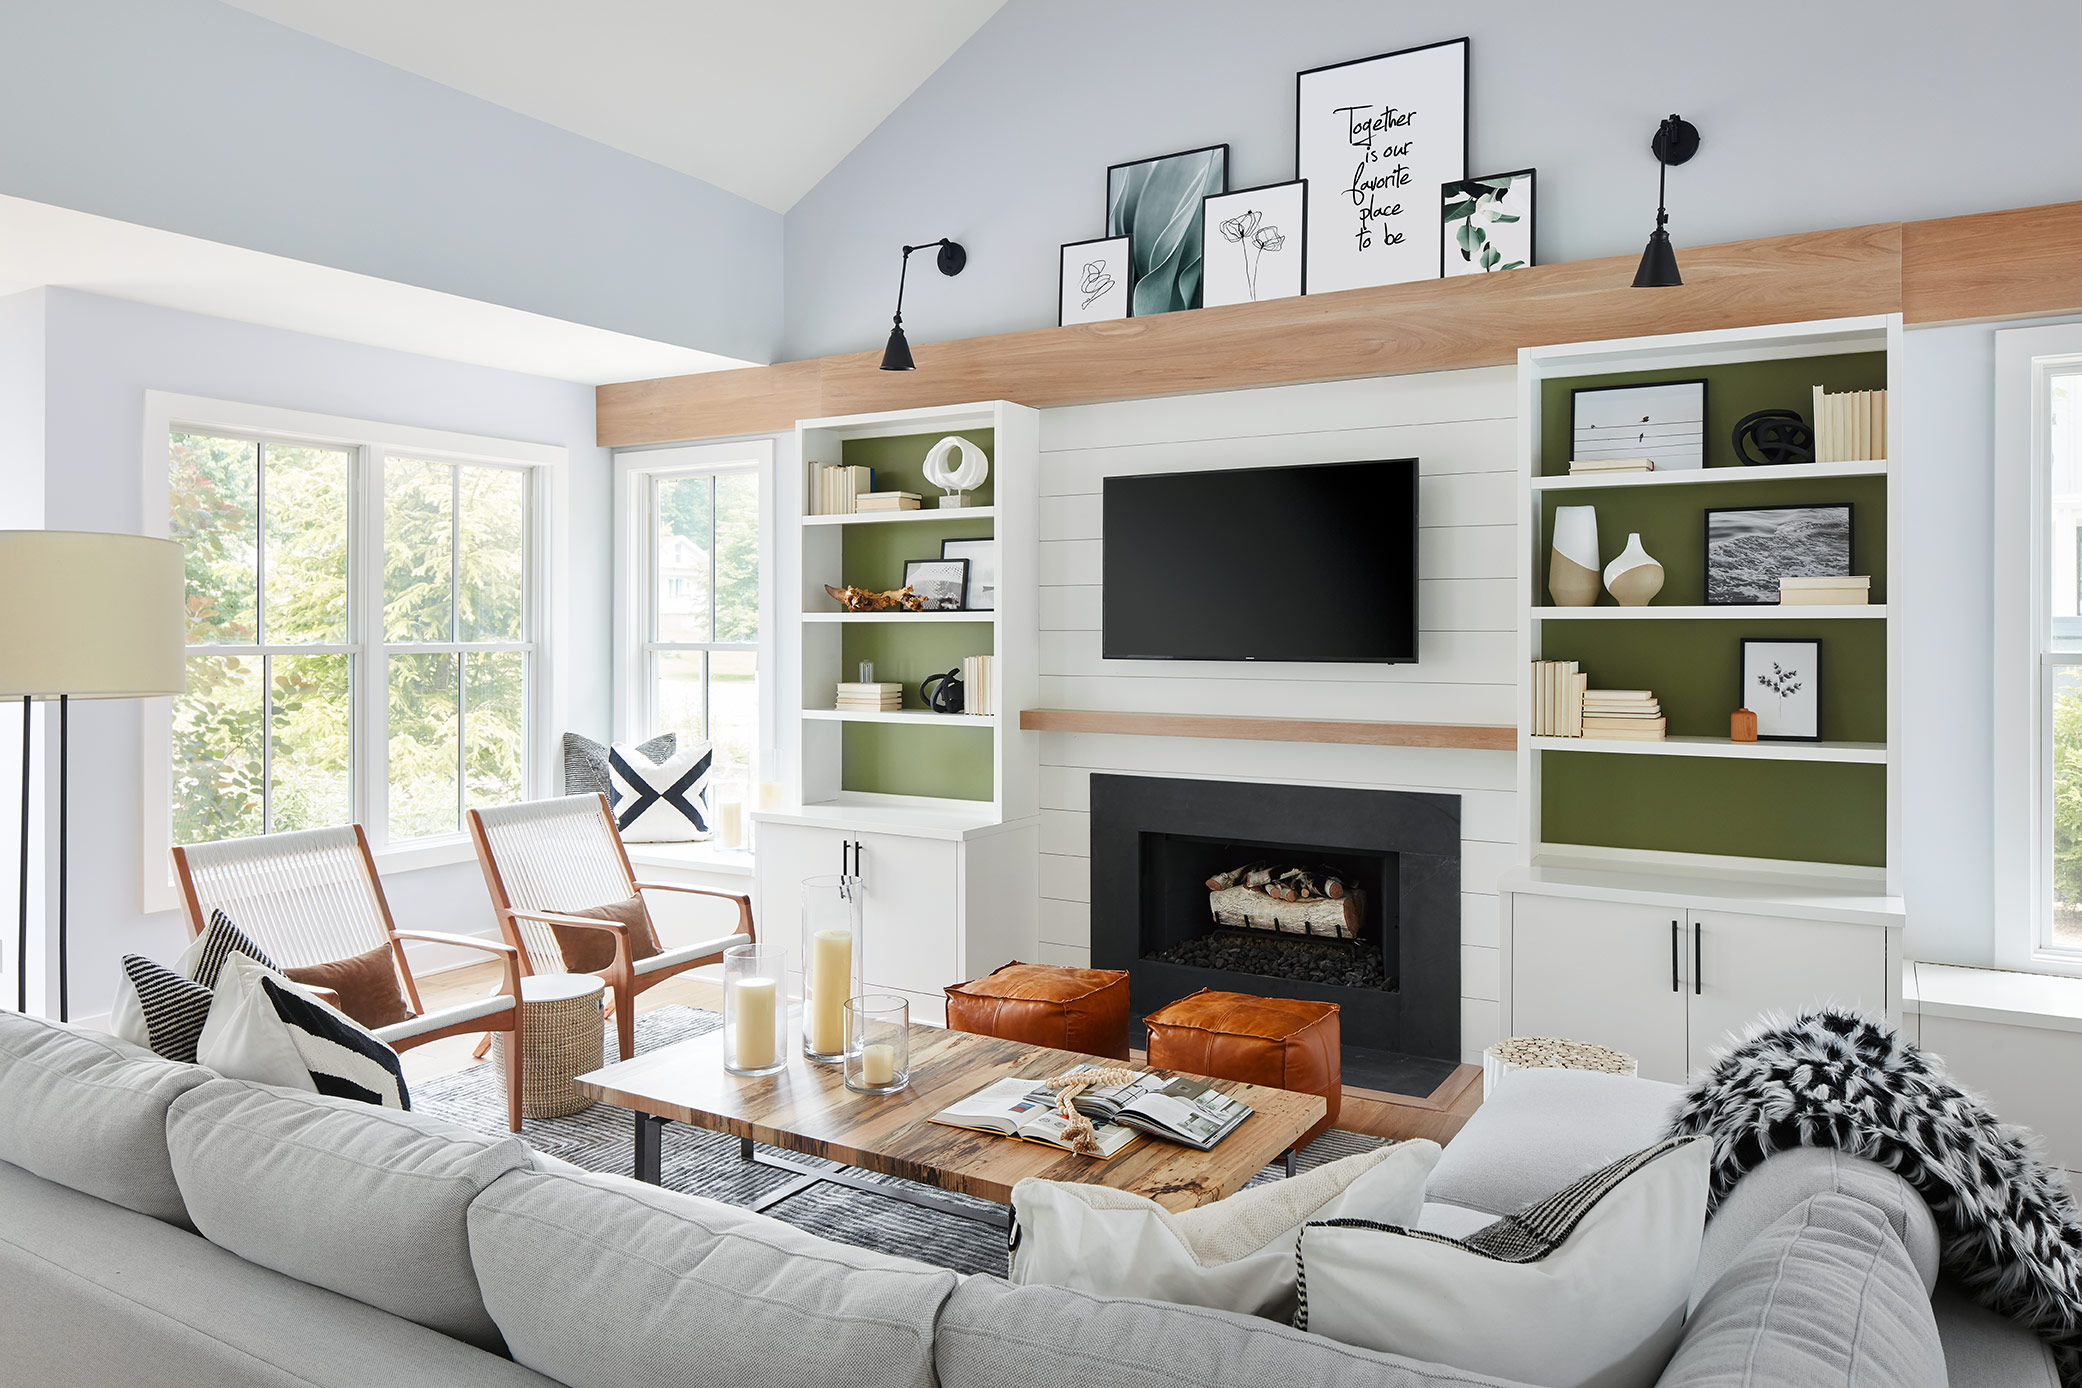 MICHIGAN LAKEHOUSE - MODERN, ECLECTIC AND INVITING